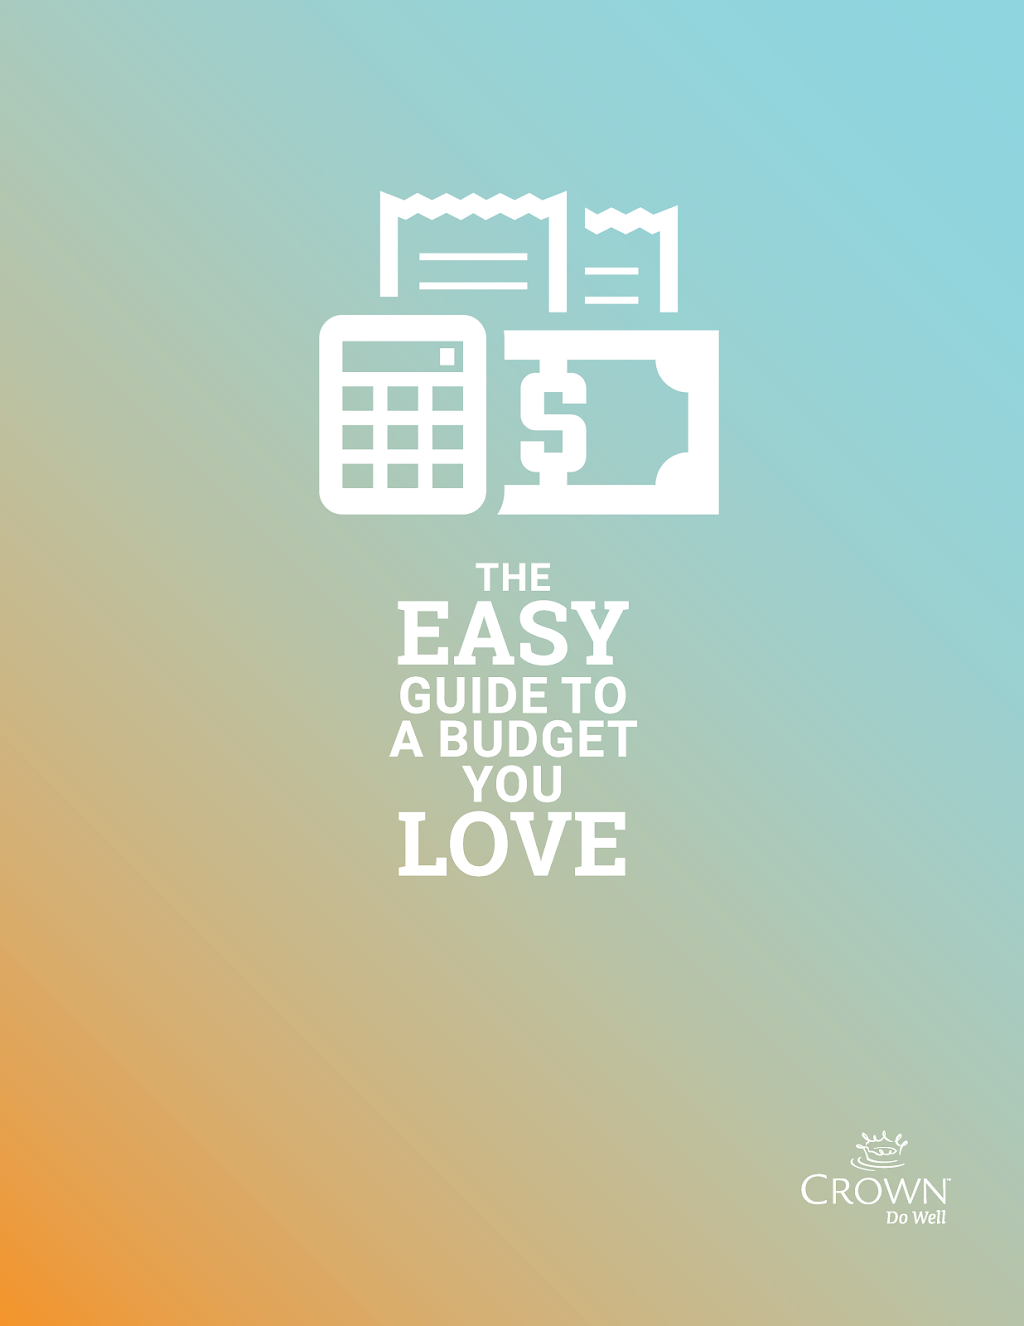 The Easy Guide to a Budget You Love